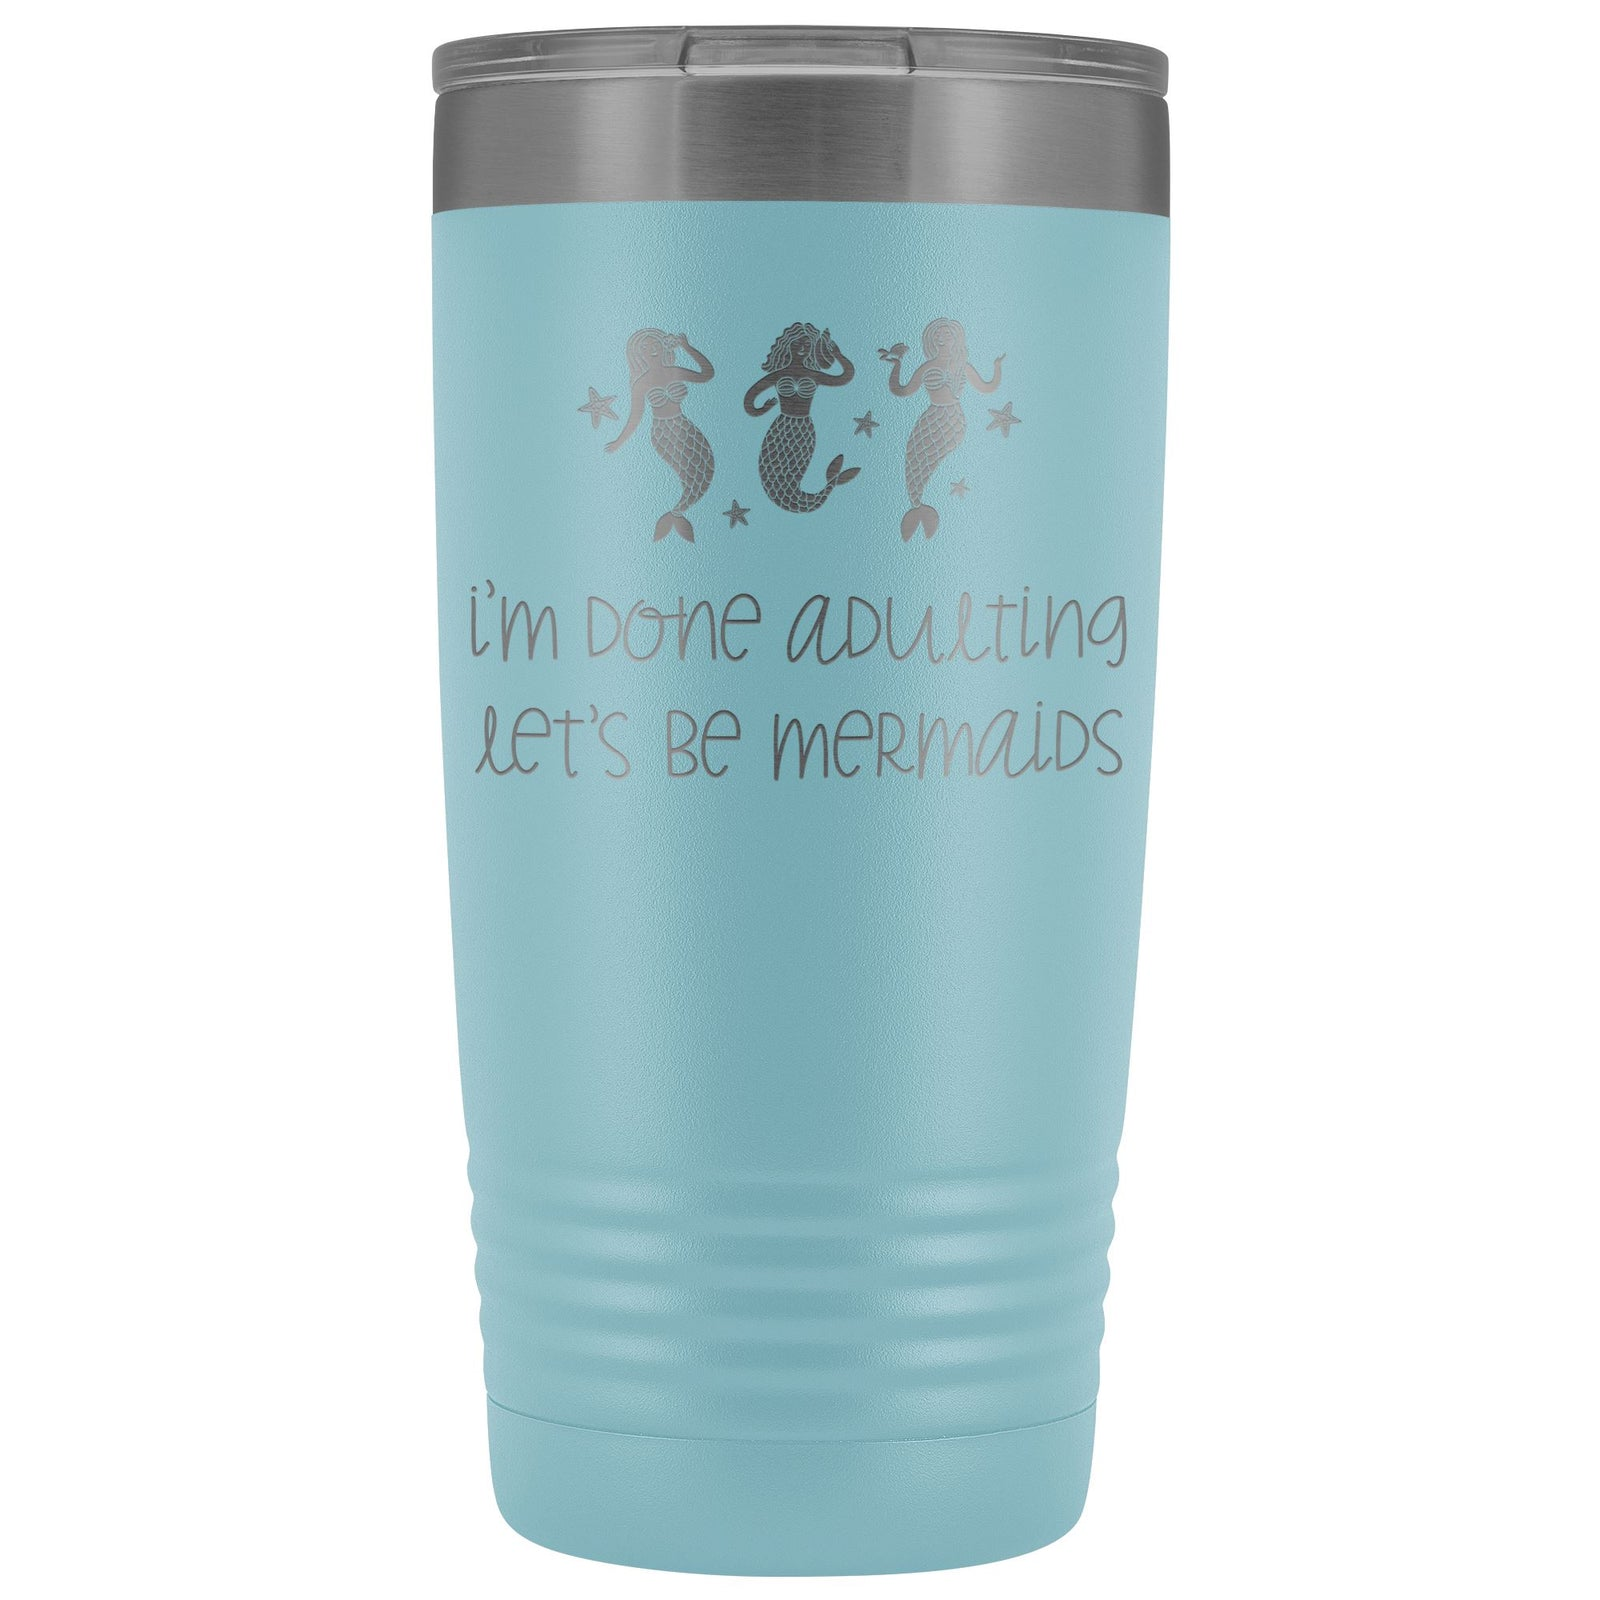 Done Adulting, Let's Be Mermaids 20oz. Insulated Tumbler